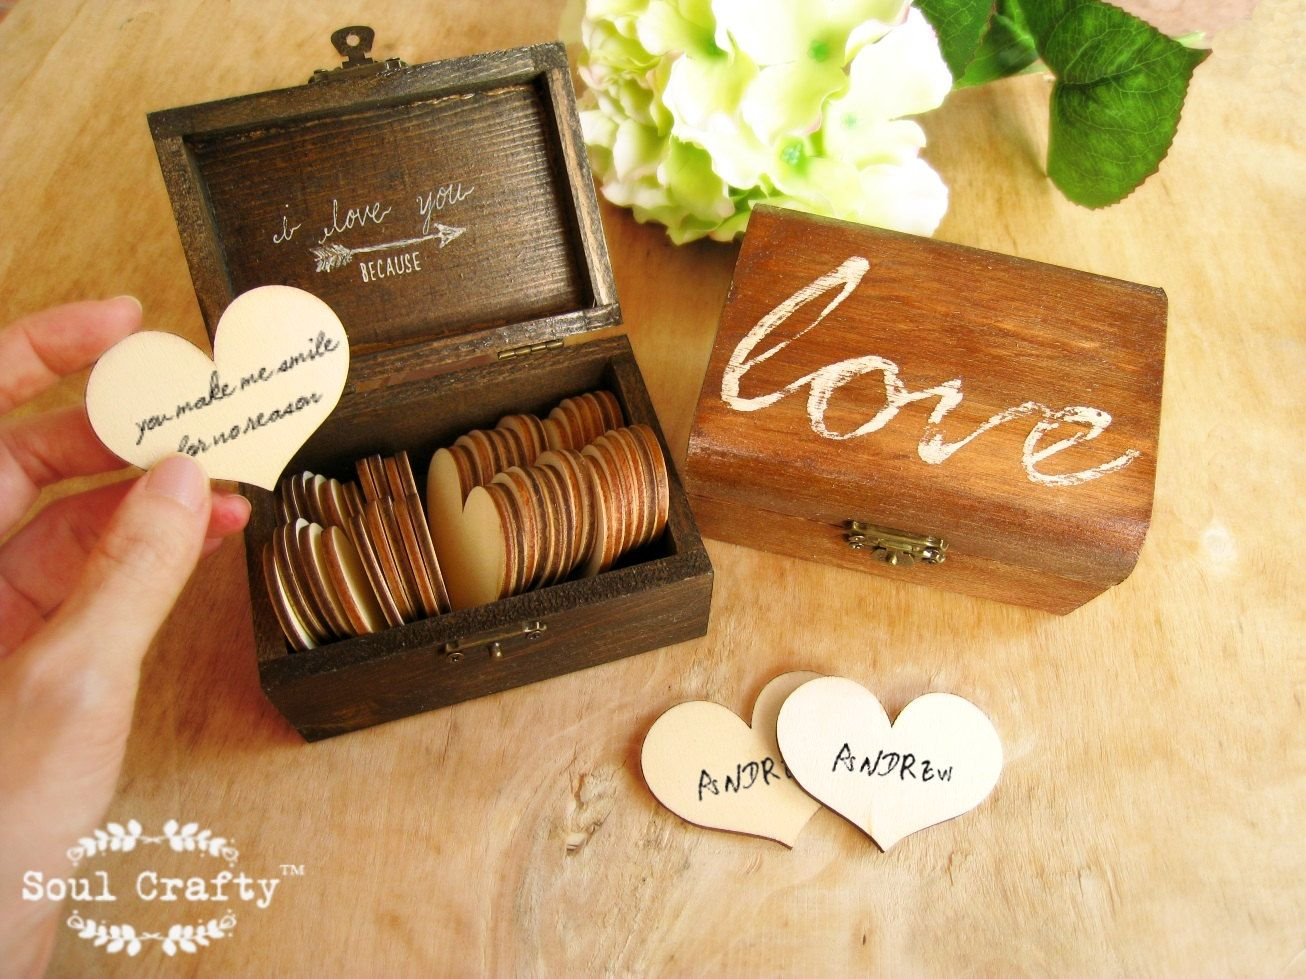 52 Reasons I Love You Because Wooden Heart Message